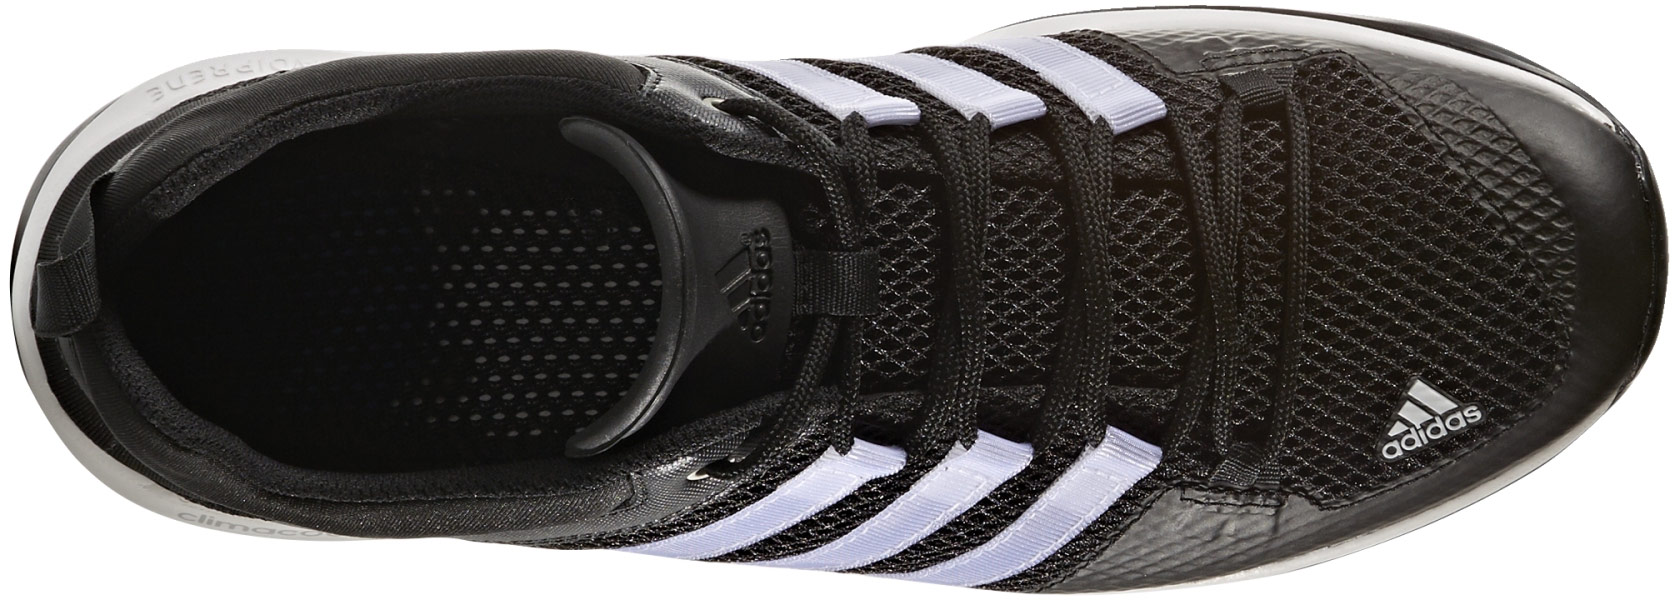 Adidas Climacool Daroga Plus Hiking Black Men´s shoes,adidas